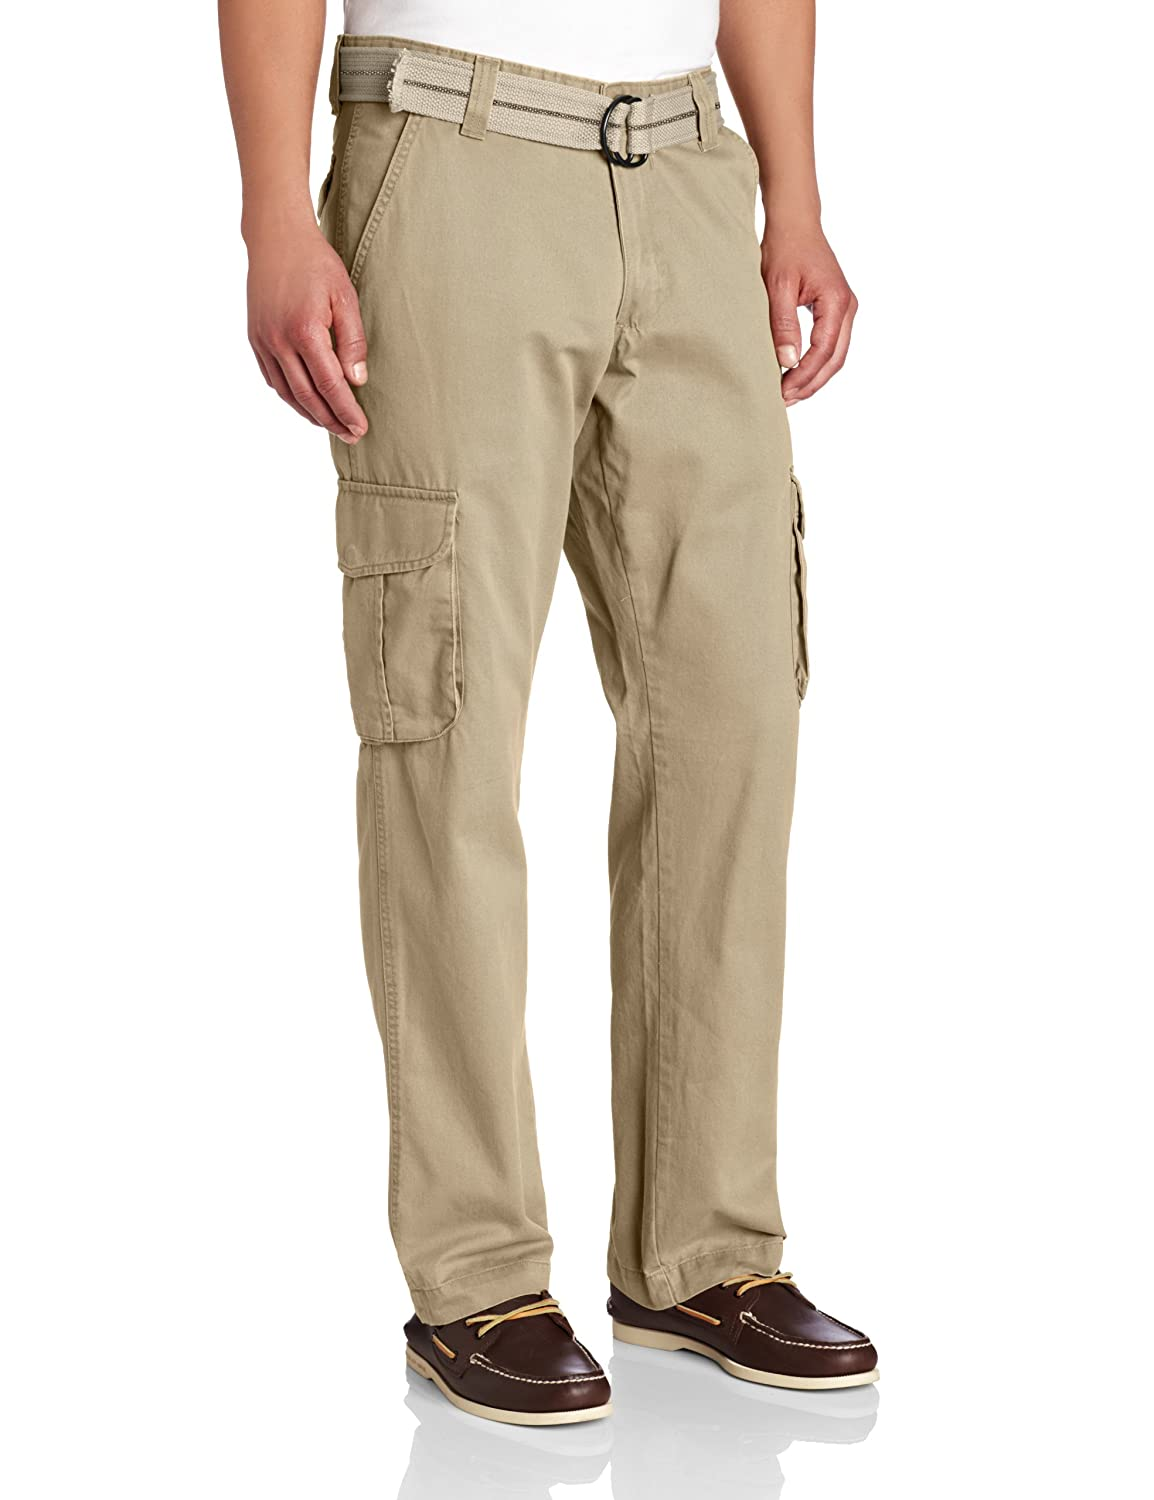 Cargo Khaki pants for men advise dress in everyday in 2019